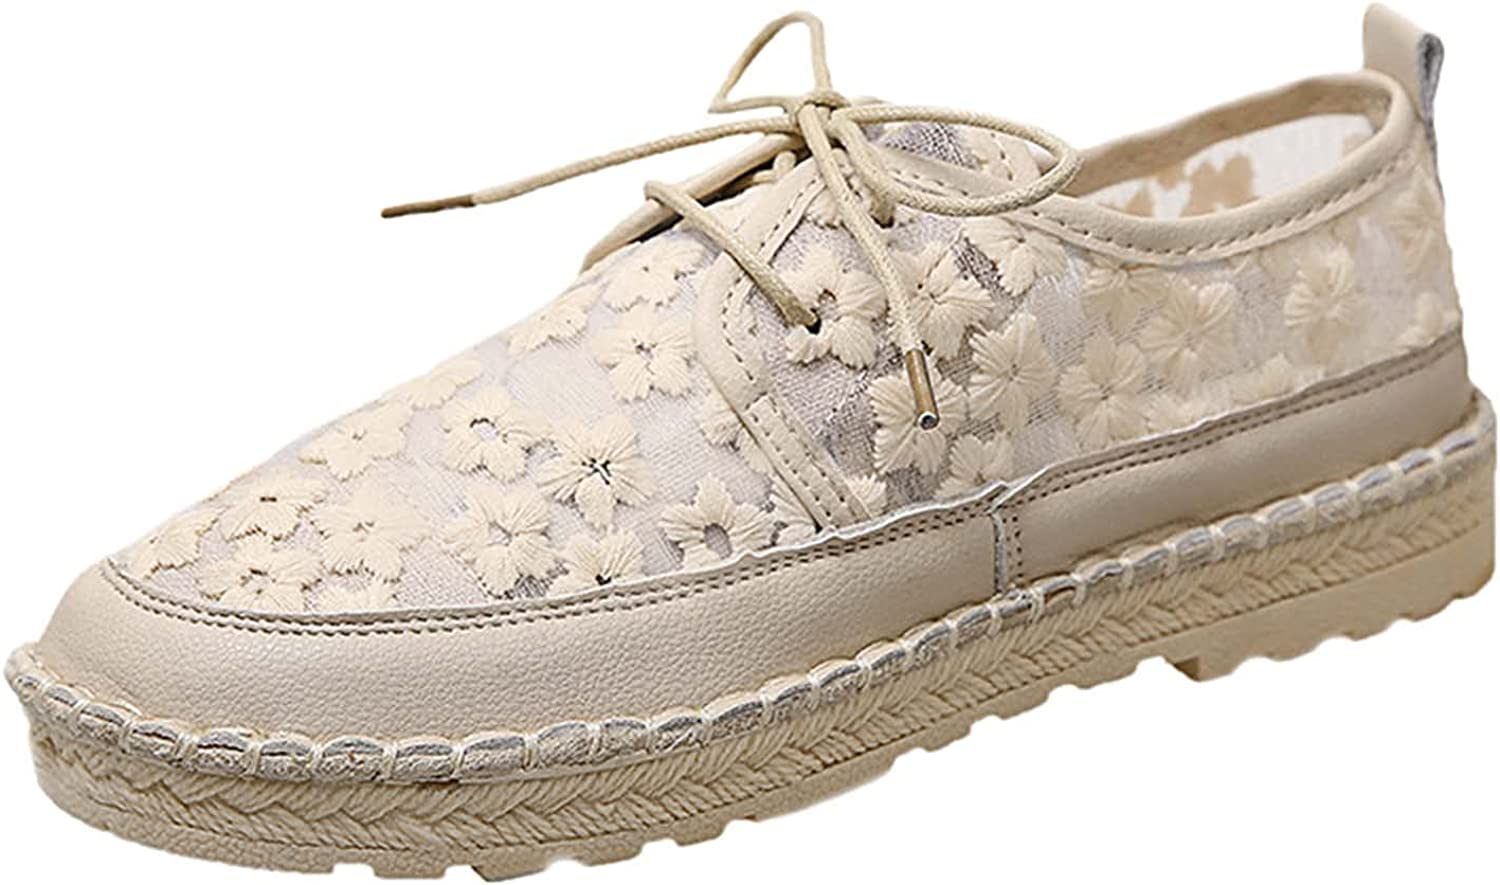 FAMOORE Casual Shoes for Women Clearance Slipon Shoes Casual Shoes Casual Casual Shoes Women